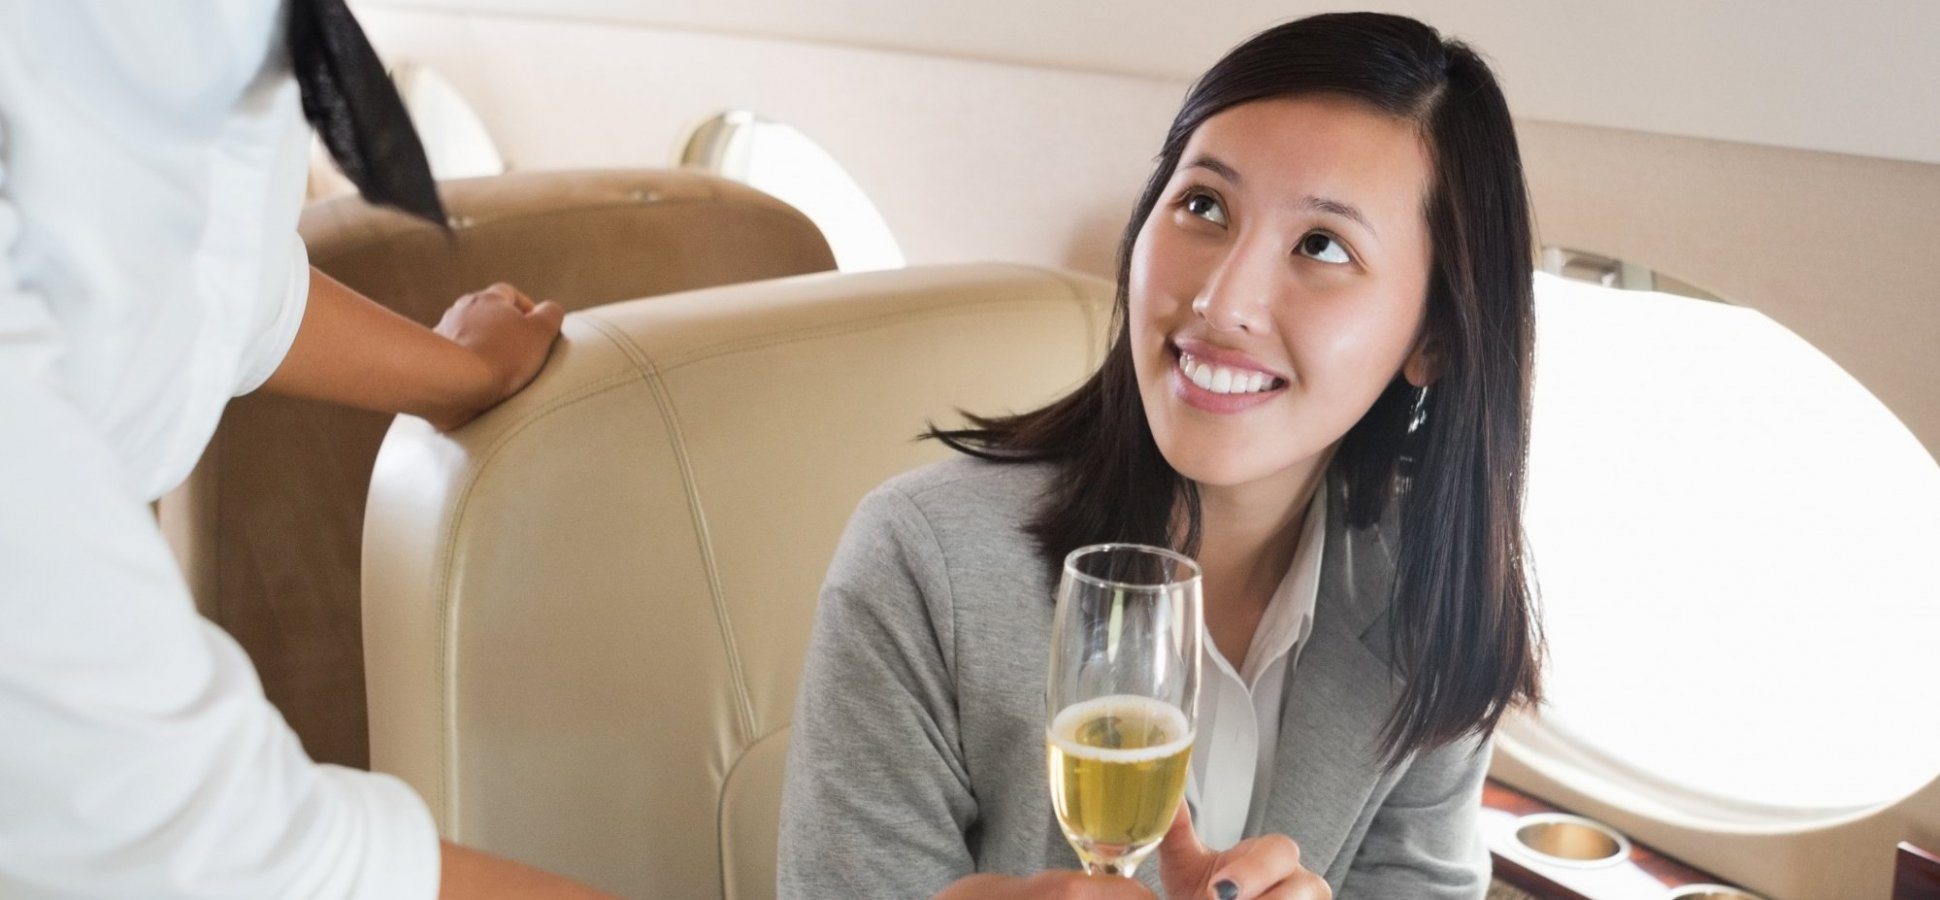 Here Are the 4 Questions to Ask That Will Land You an In-Flight Upgrade